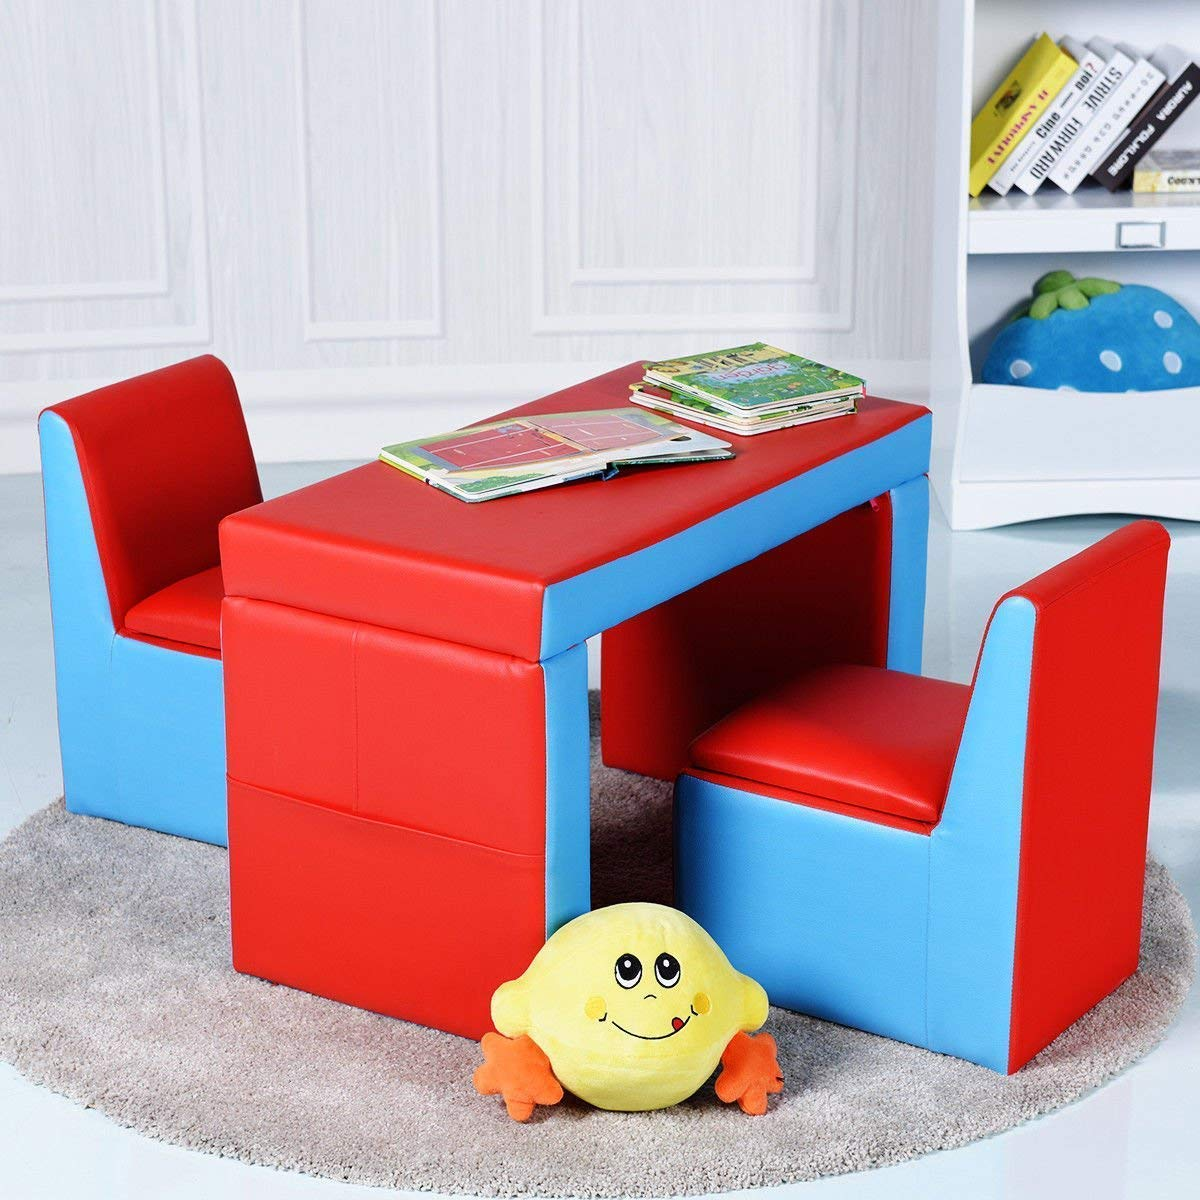 Exceptional Amazon.com: Costzon Kids Sofa, 2 In 1 Multi Functional Kids Table U0026 Chair  Set, 2 Seat Couch With Storage Box For Boys U0026 Girls: Kitchen U0026 Dining